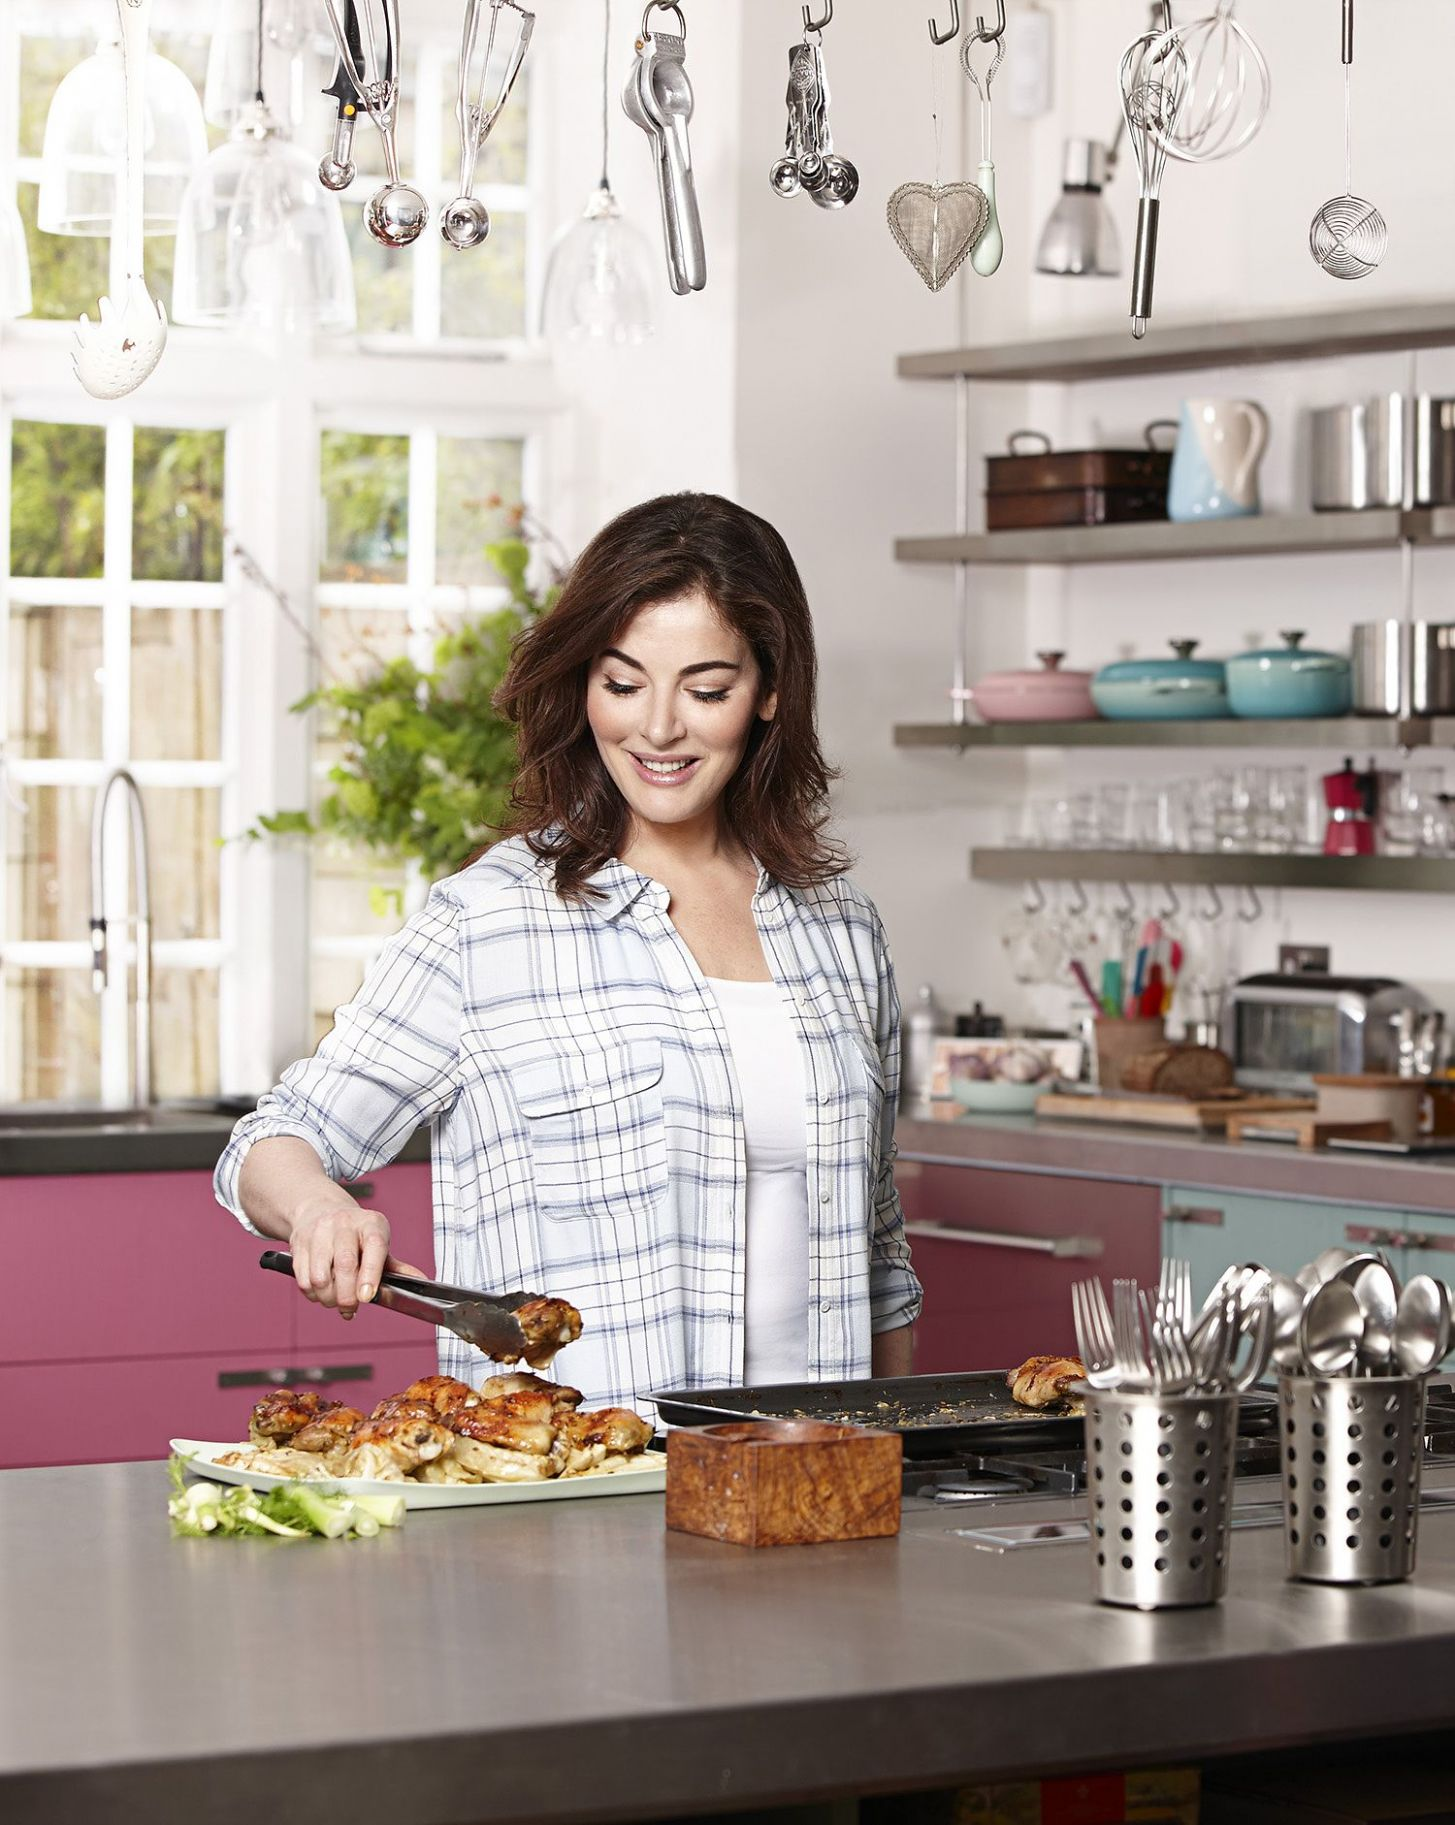 What & How to Eat During the Summer? Food Tips by Nigella Lawson